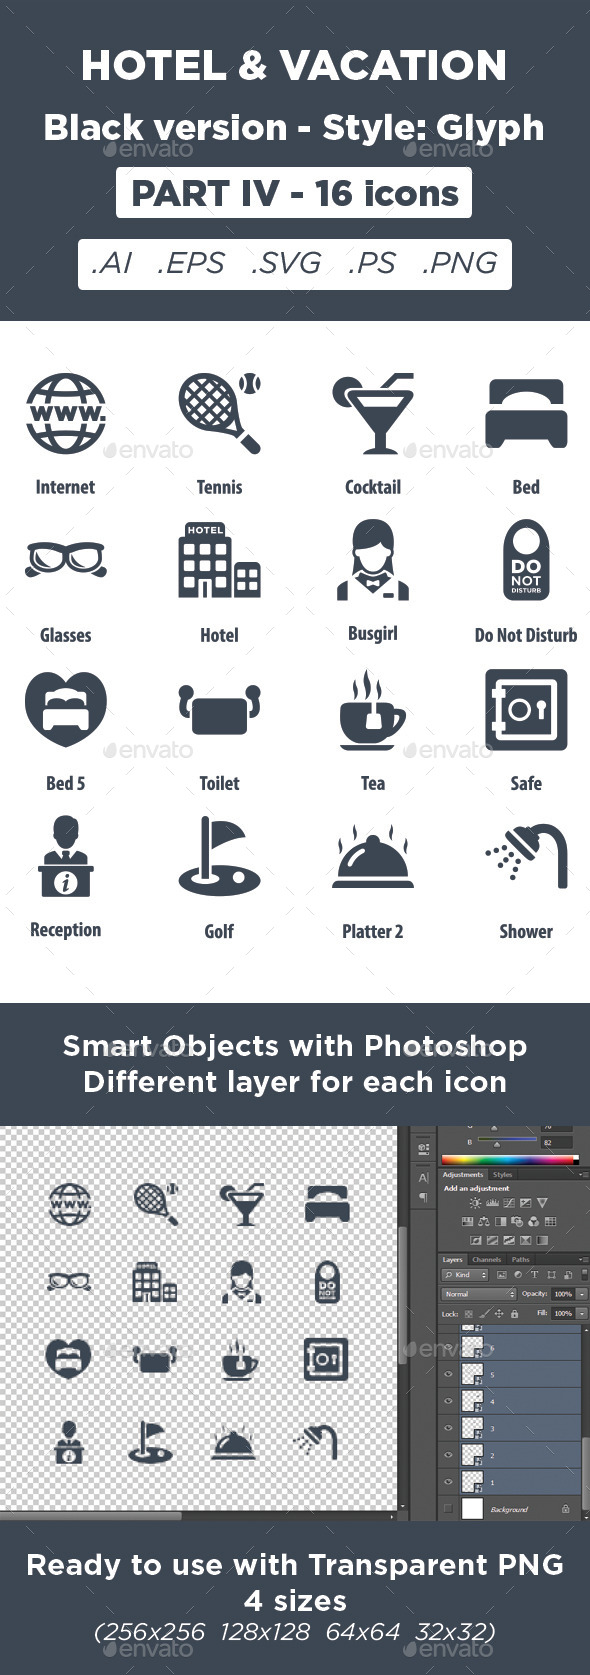 GraphicRiver Hotel & Vacation Icons Glyph style Part 4 11450696